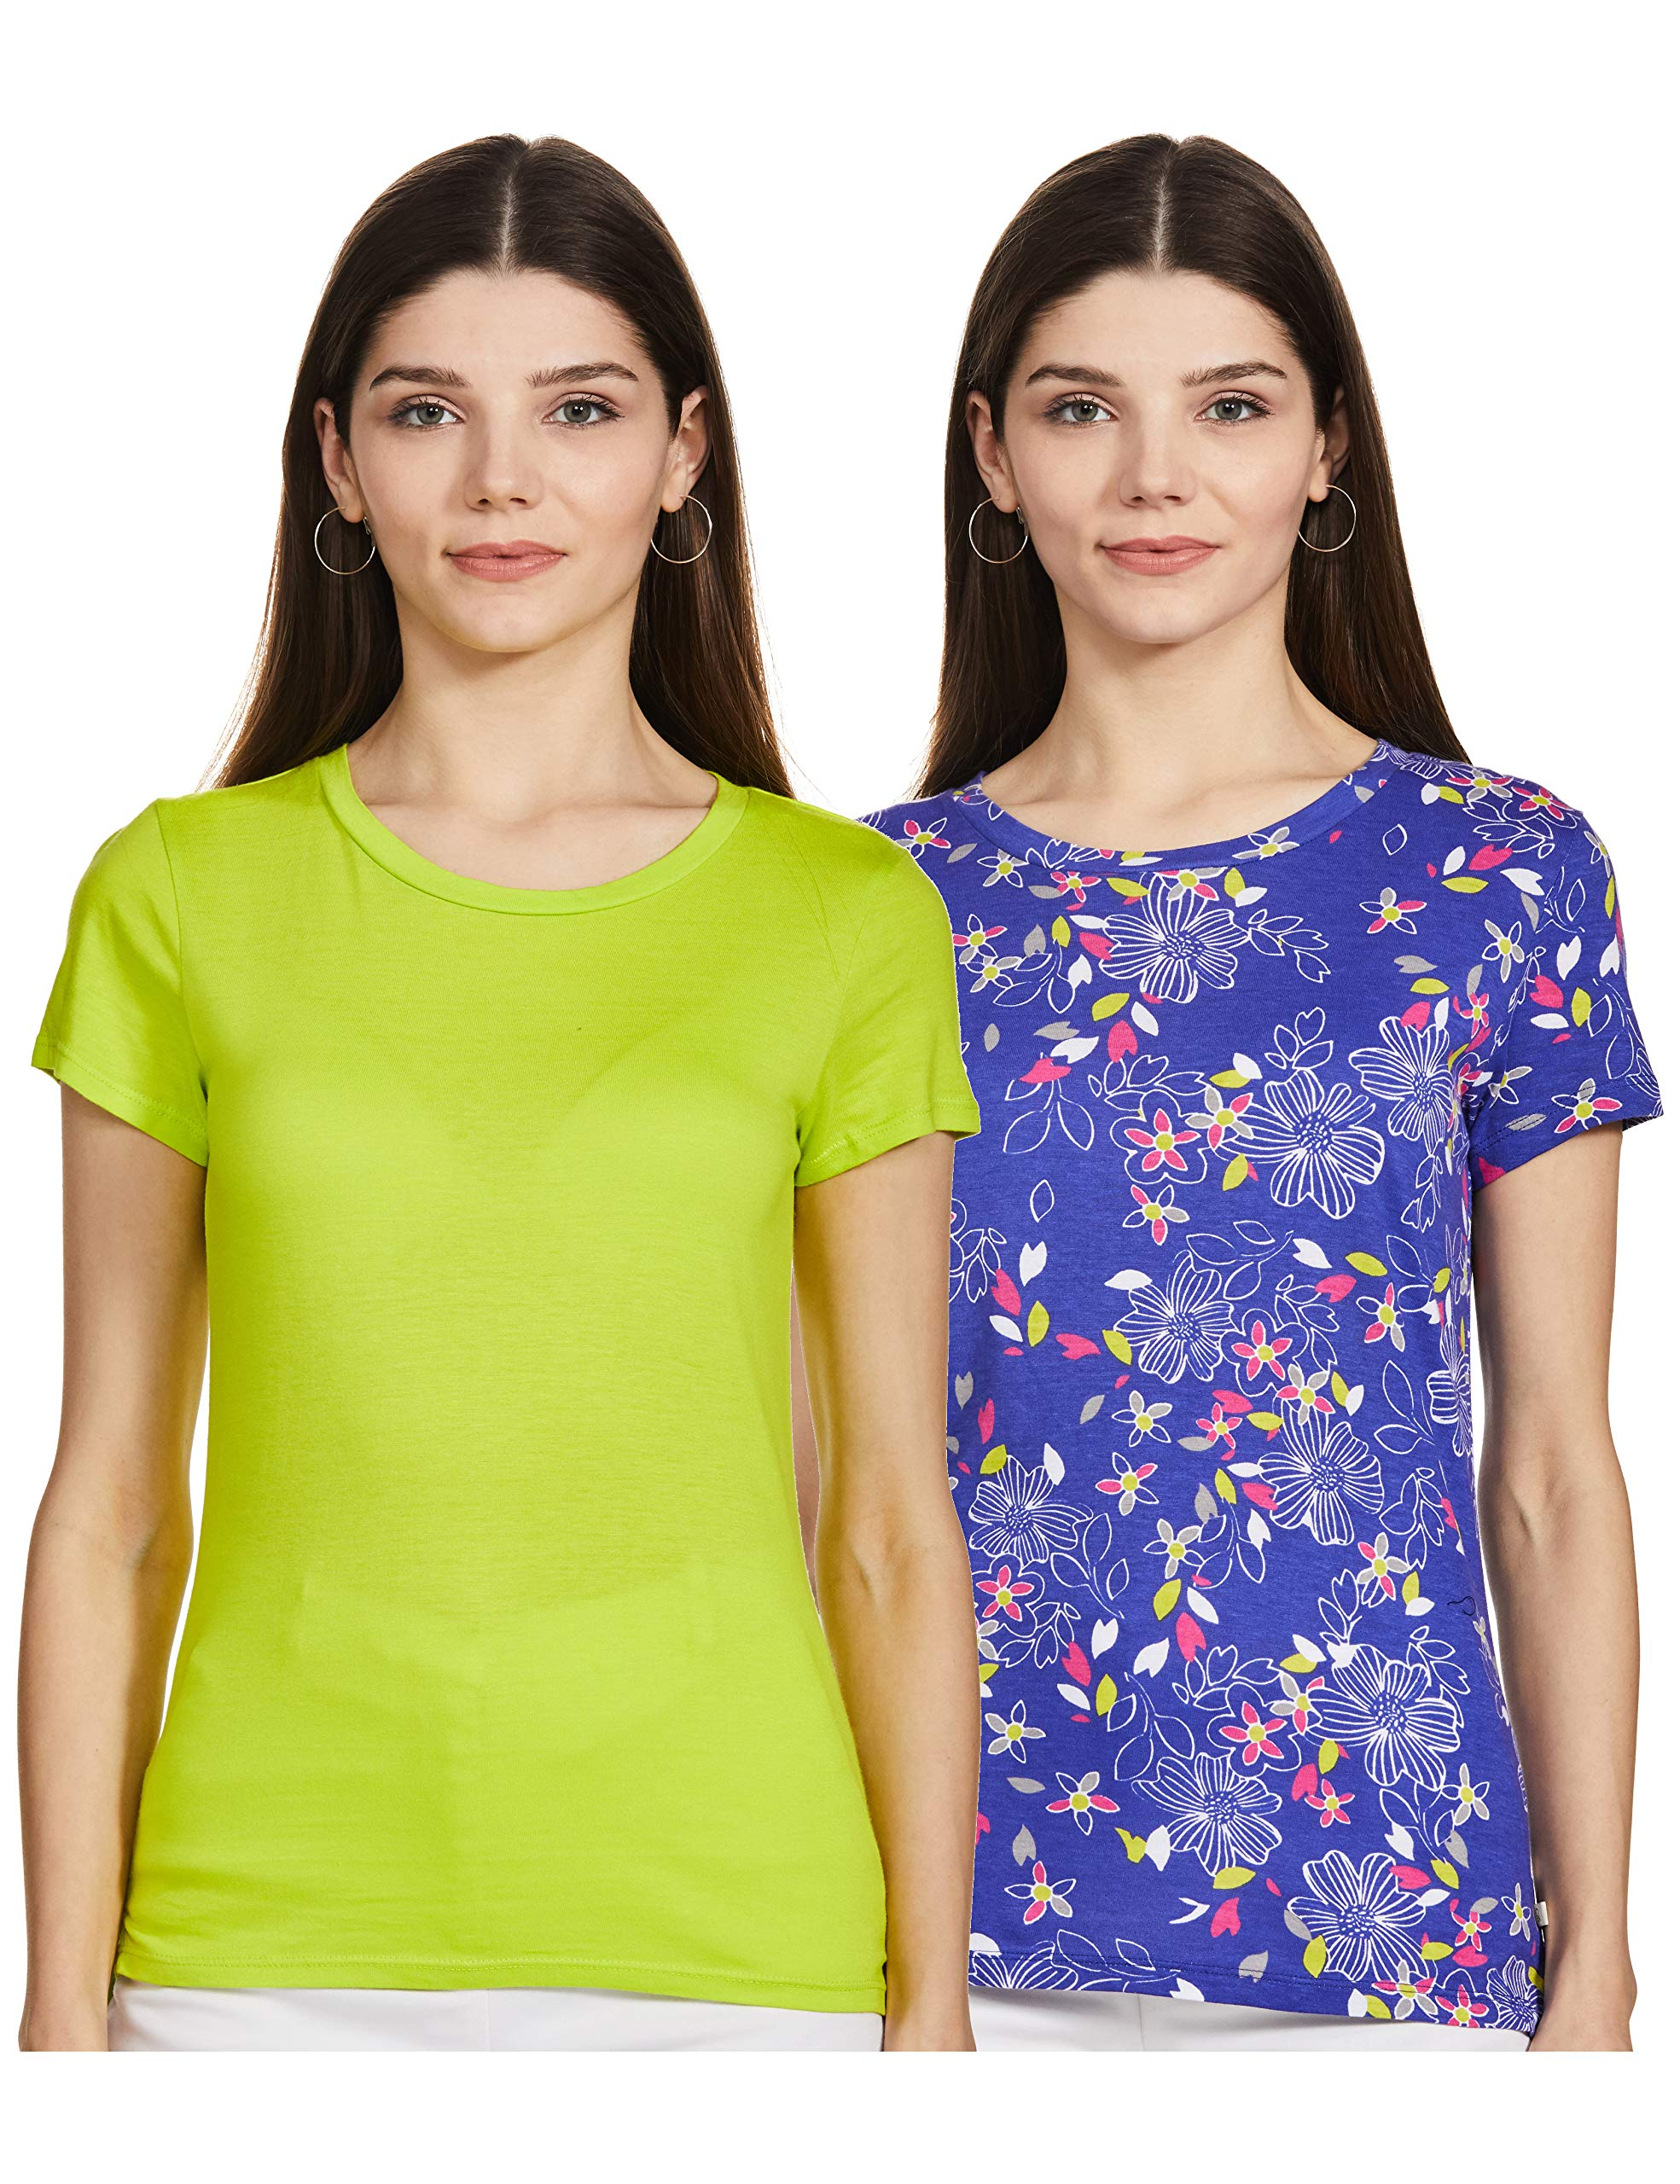 United Colors of Benetton Women's Classic Fit T-Shirt